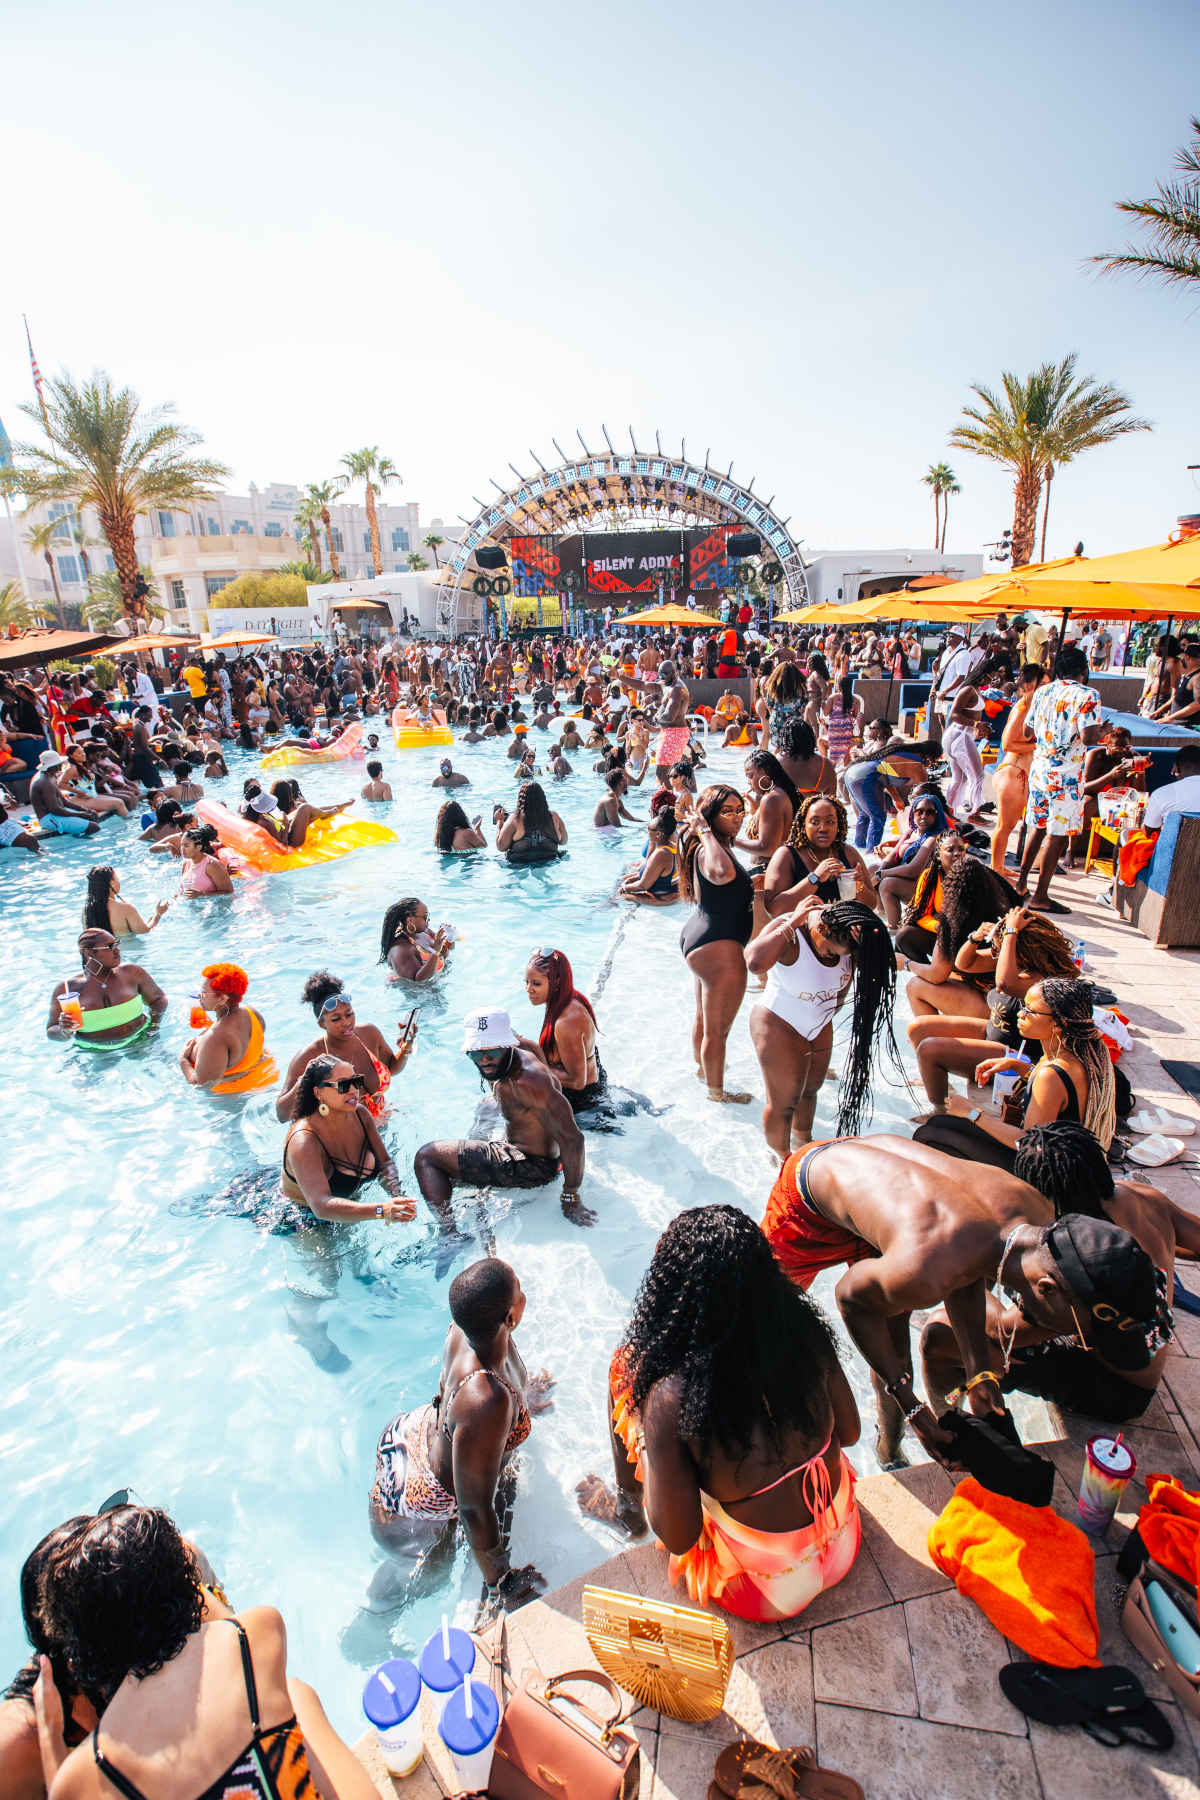 Afro nation crowd at pool party